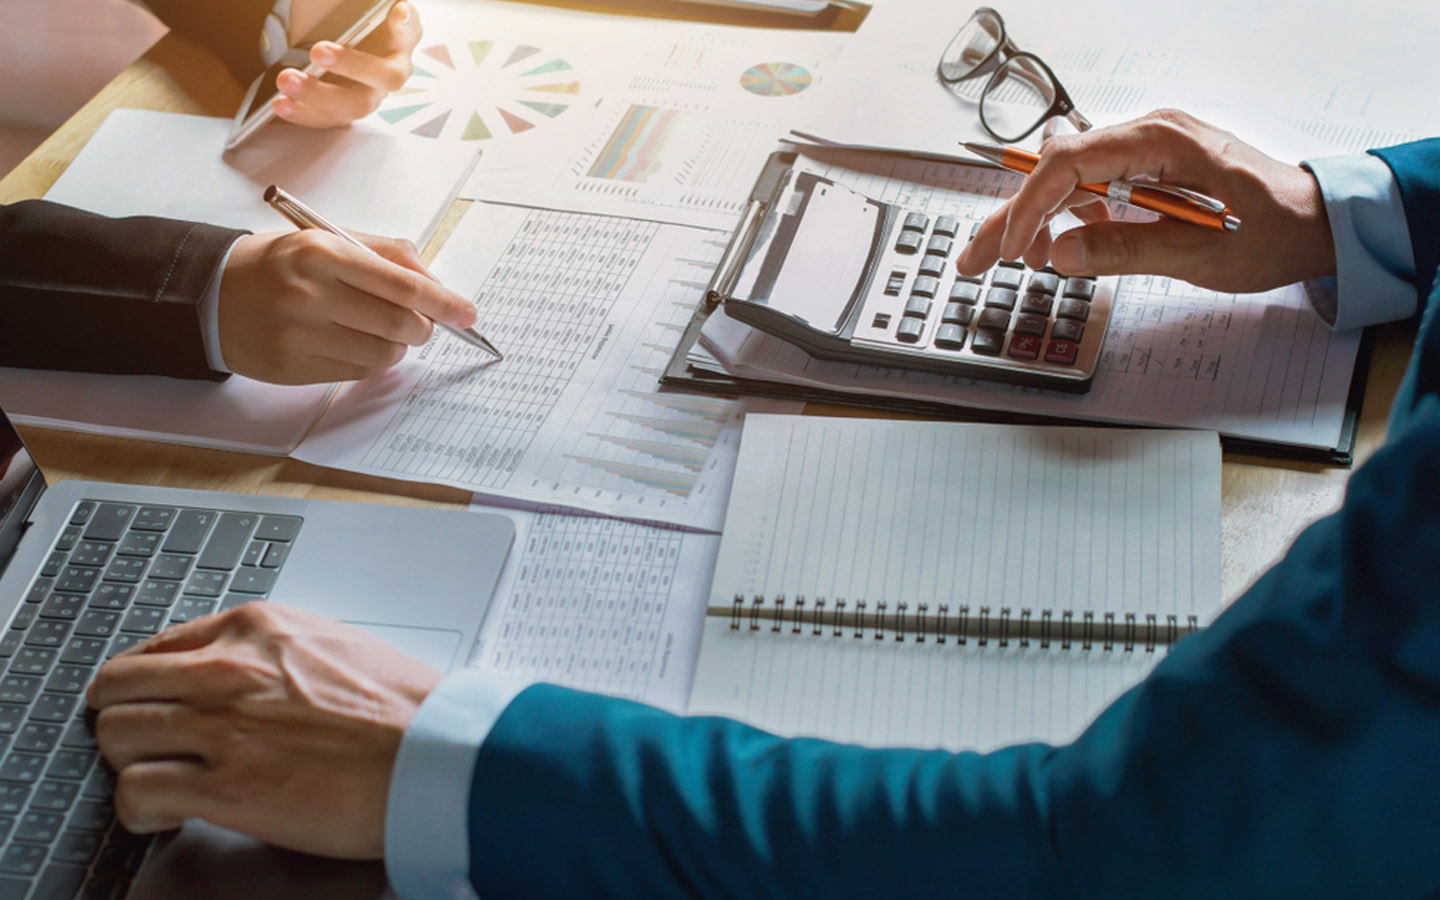 Guide to Taxes in the UAE: VAT, Excise Tax, Tourist Tax & Mo